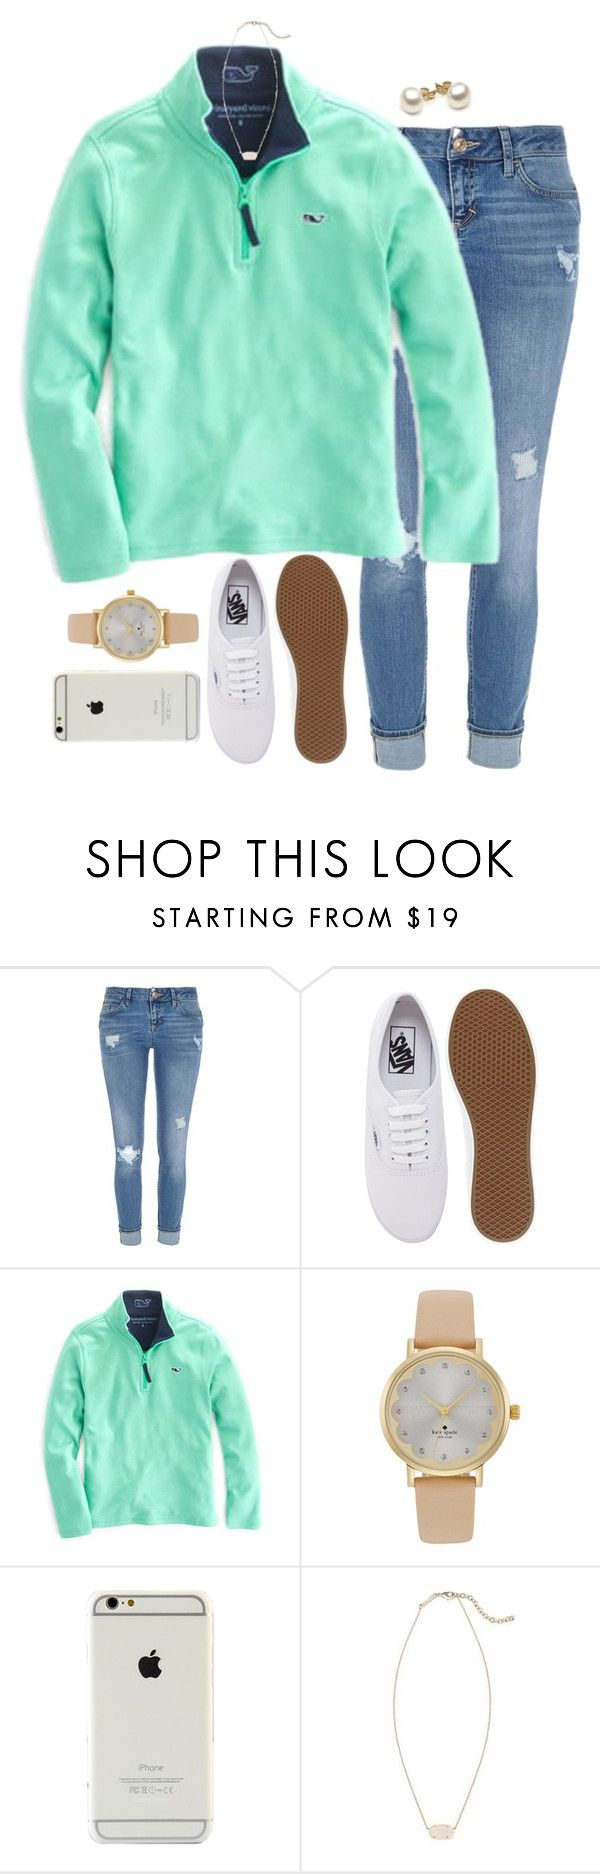 """back at it again with the white vans!!"" by evamstewart24 ❤ liked on Polyvore featuring River Island, Va"